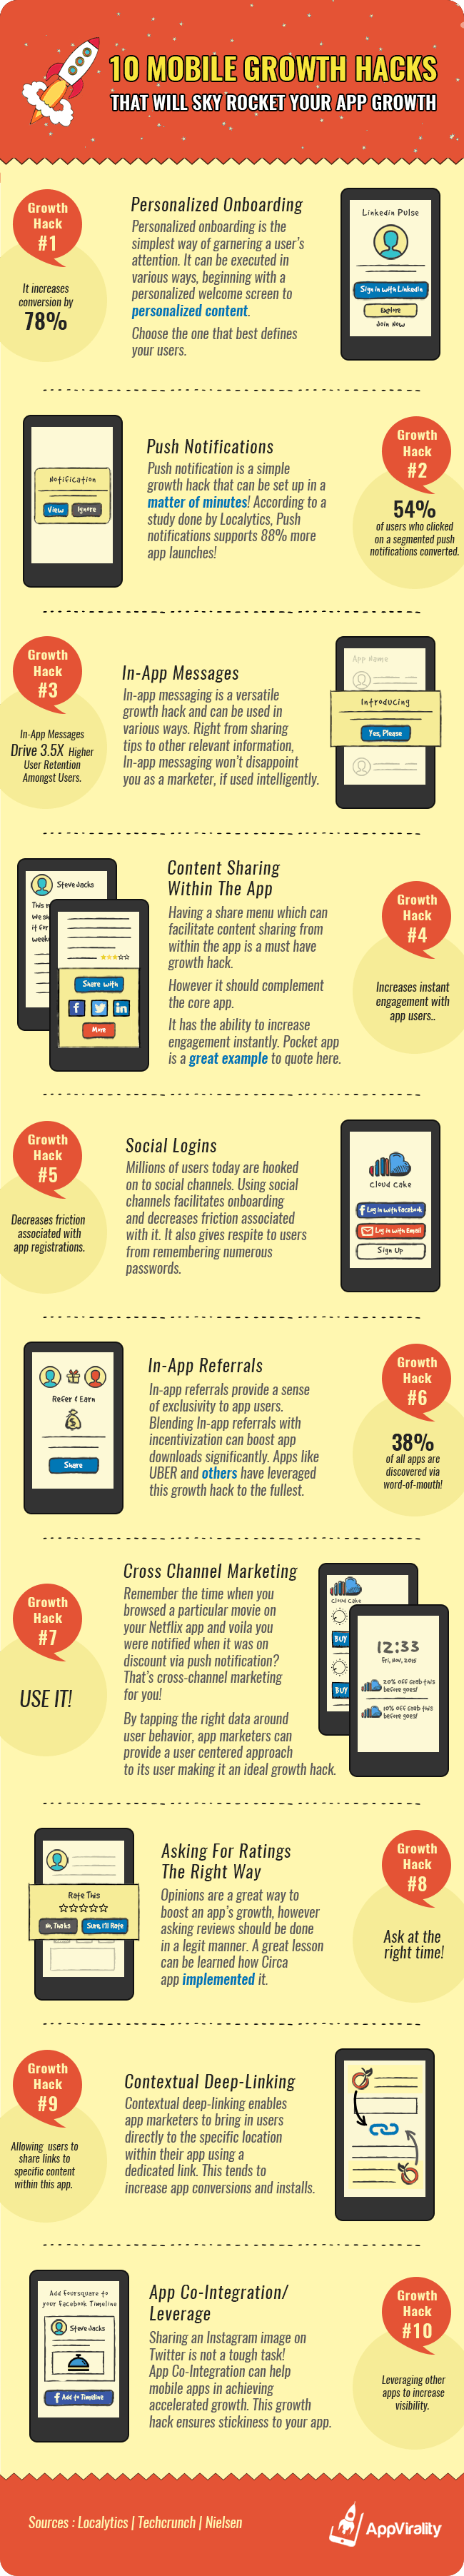 10 Mobile Growth Hacks That Will Sky Rocket Your App Growth #infographic